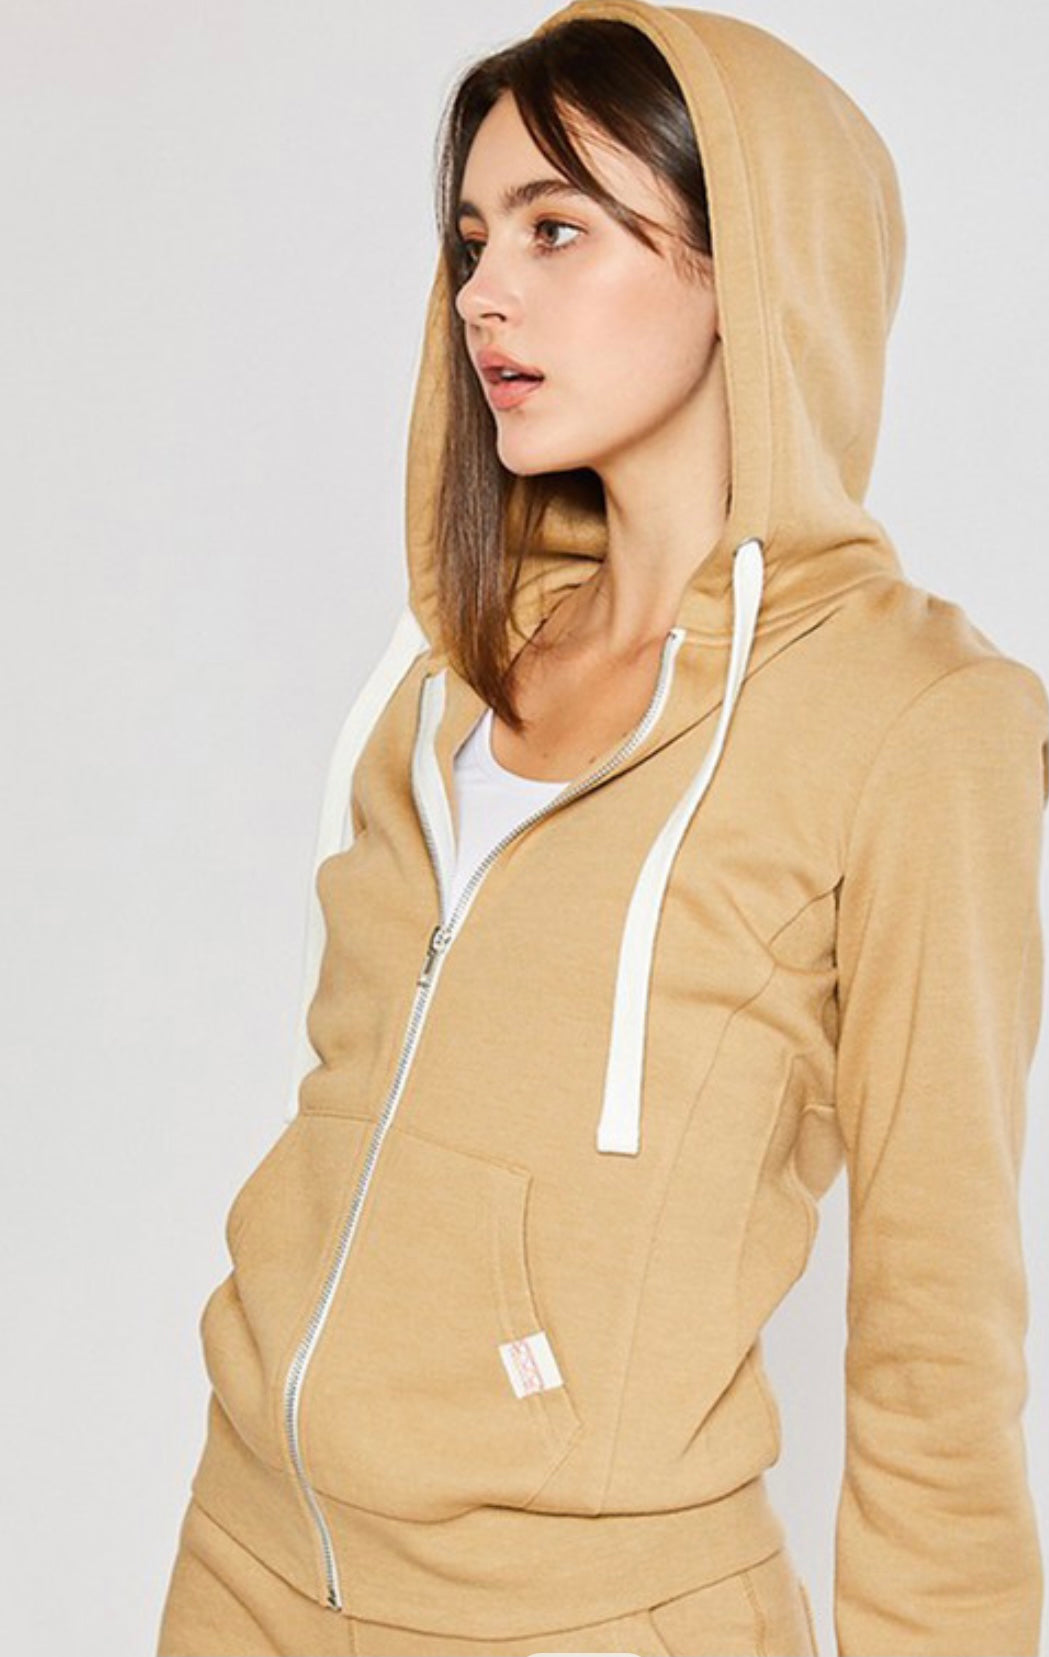 Soft Spot Zip-Up Hoodie Jacket In Golden Tan